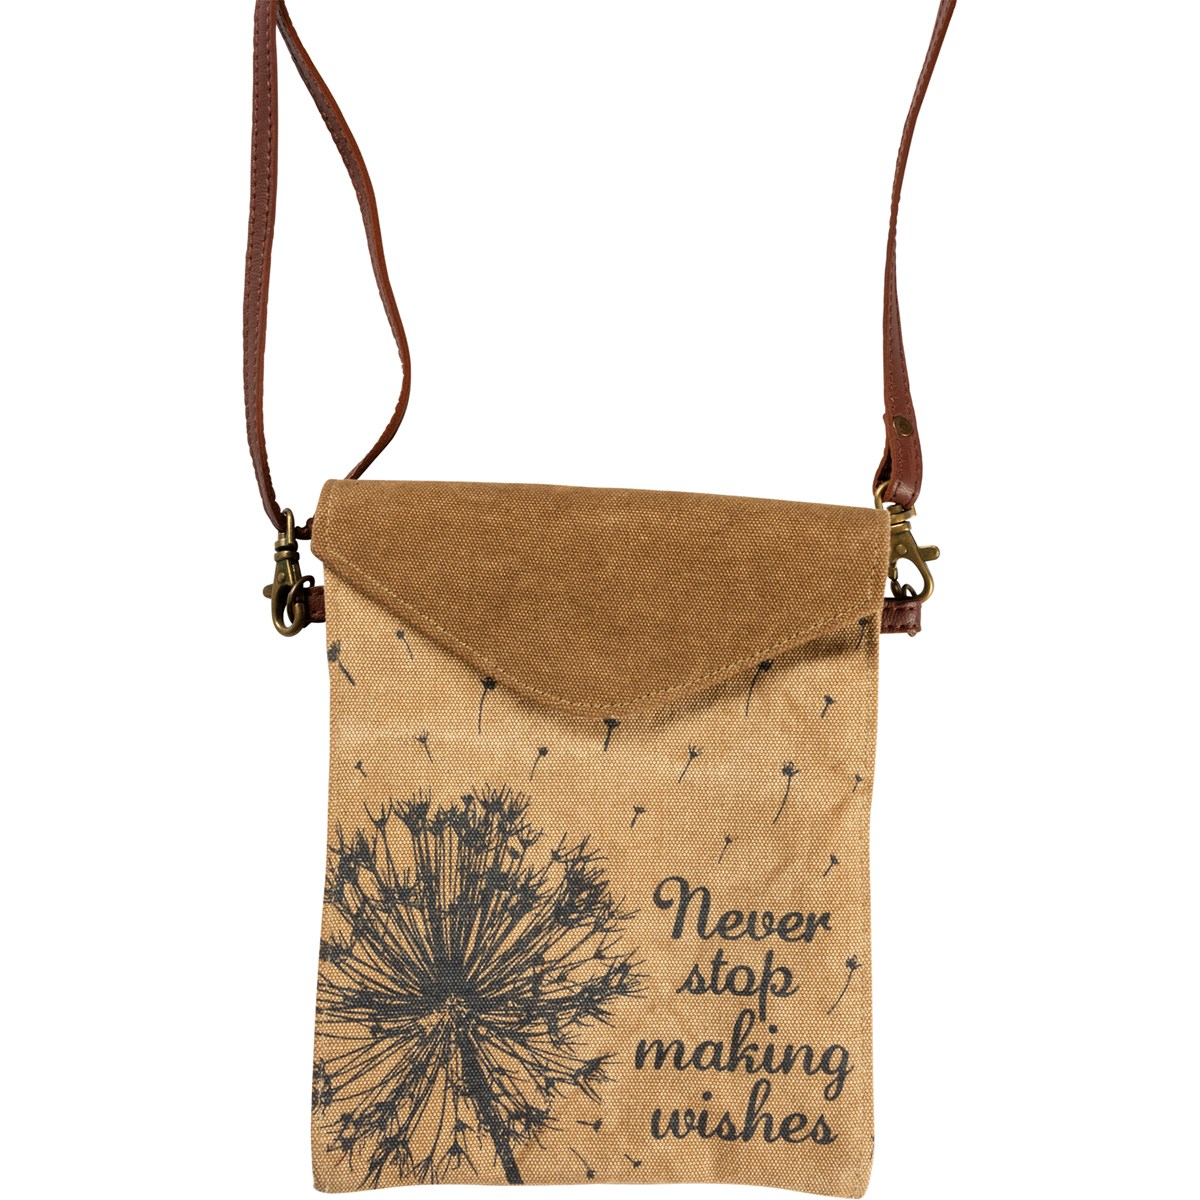 "Crossbody Bag - Never Stop Making Wishes - 6.50"" x 7.75"", Adjustable Handle Drop - Canvas, Leather, Metal"